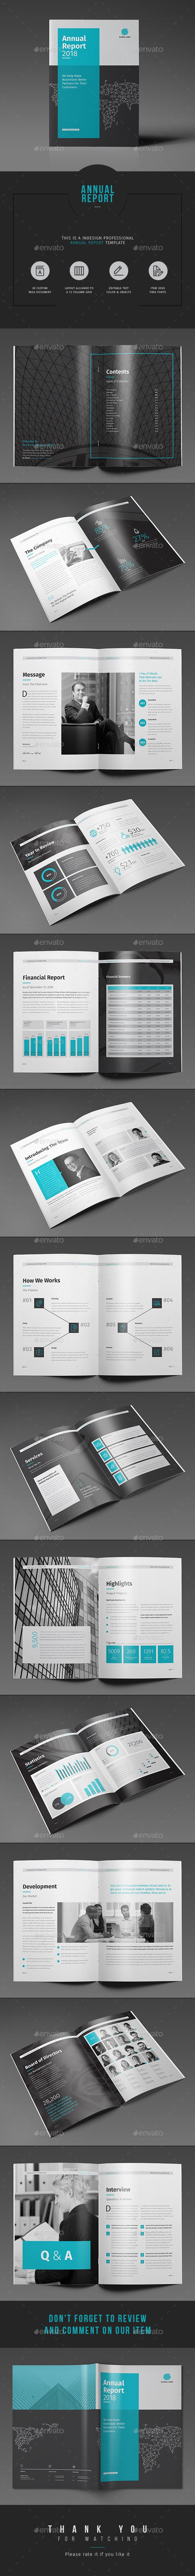 Annual Report Template InDesign INDD. Download here… la parte de answer y questions esta filete para los próximos informes